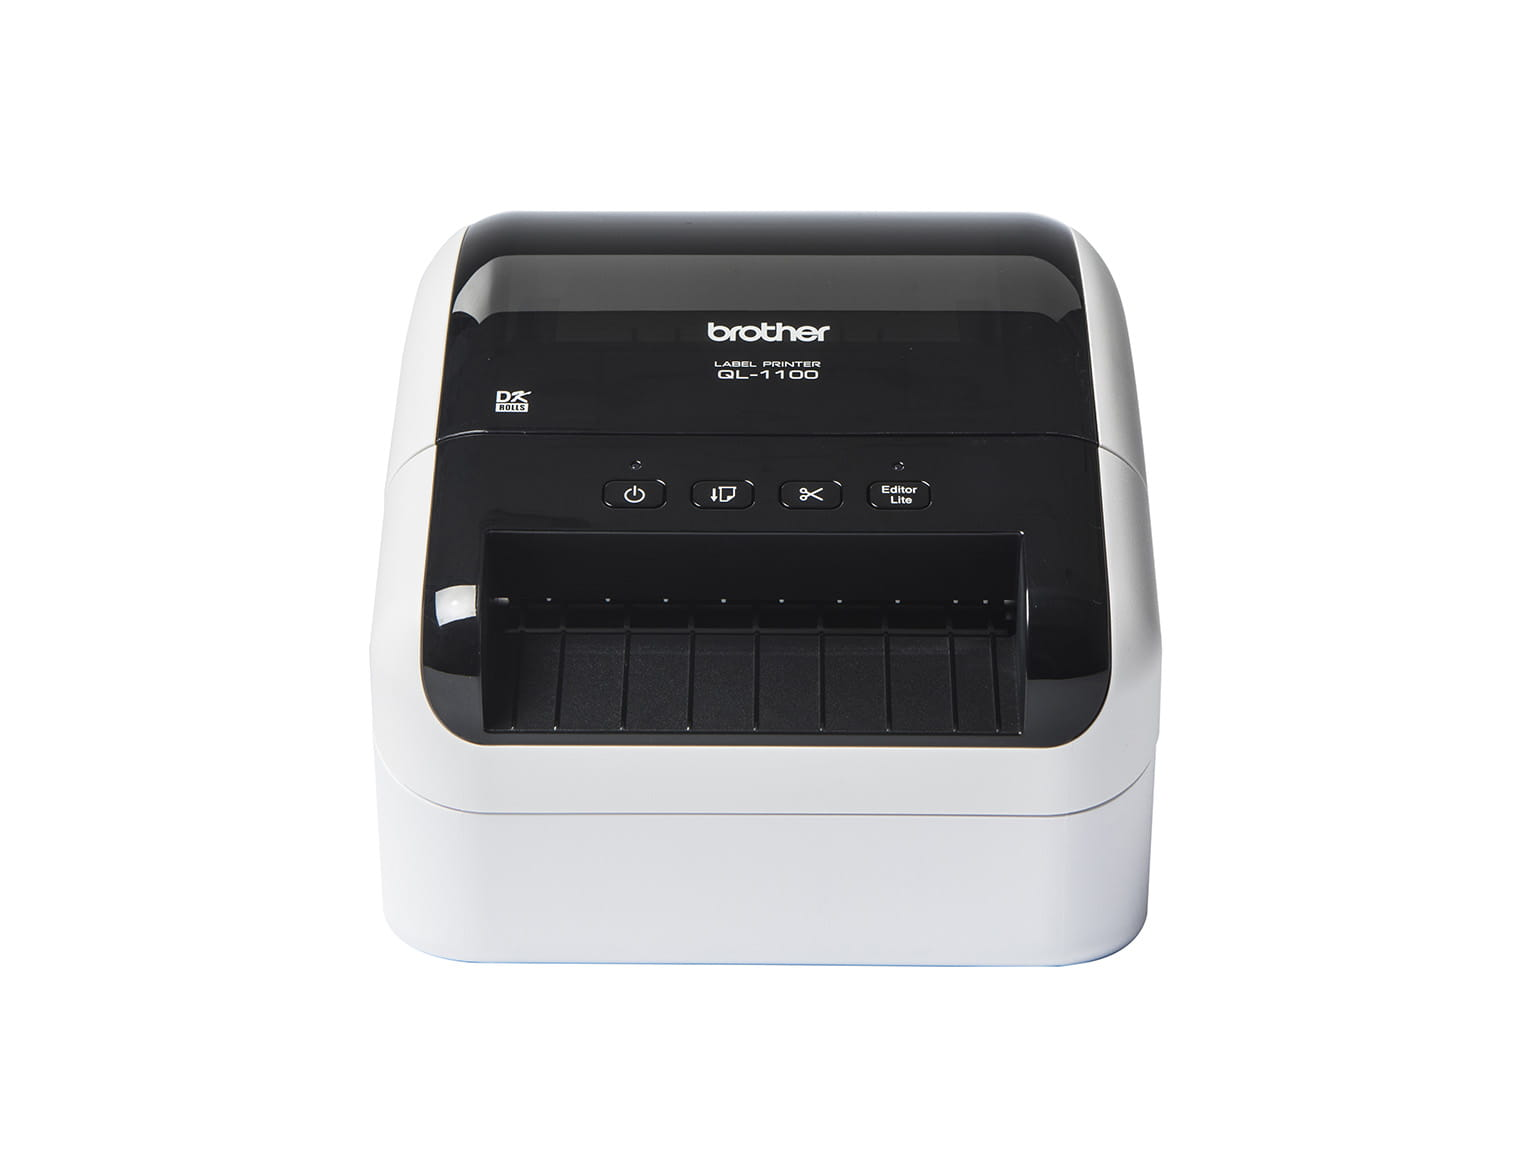 Brother QL-1100  series label printer